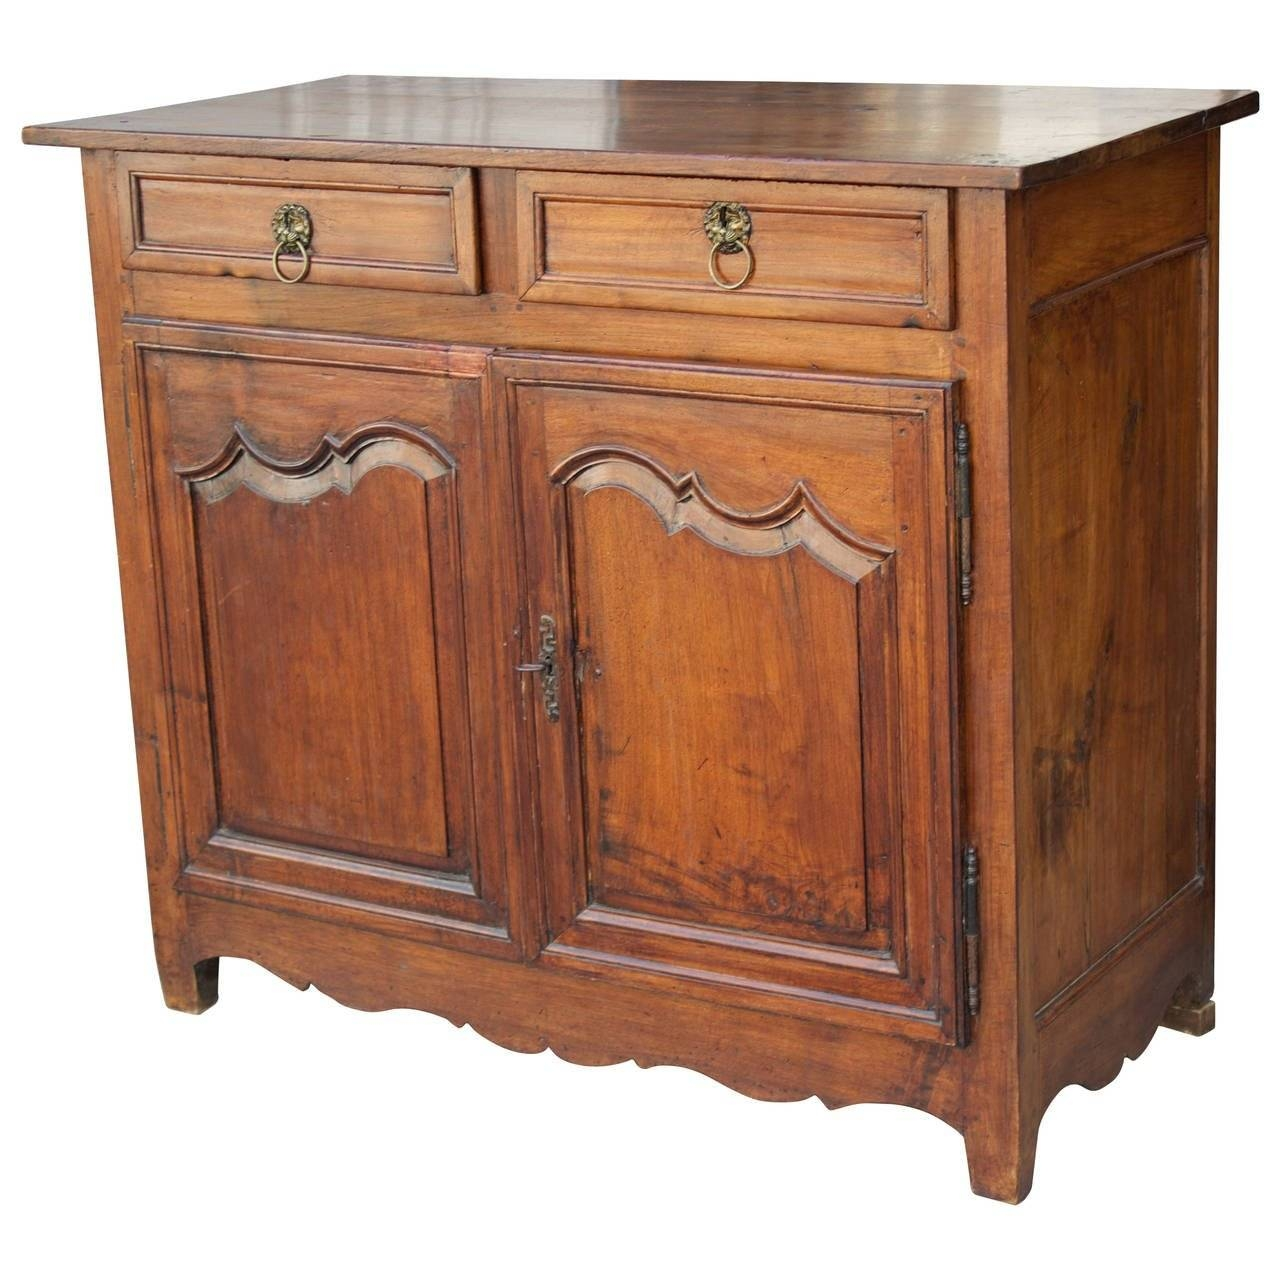 18Th Century French Country Louis Xiv Walnut Buffet Or Sideboard Throughout Sideboard Sale (#1 of 20)